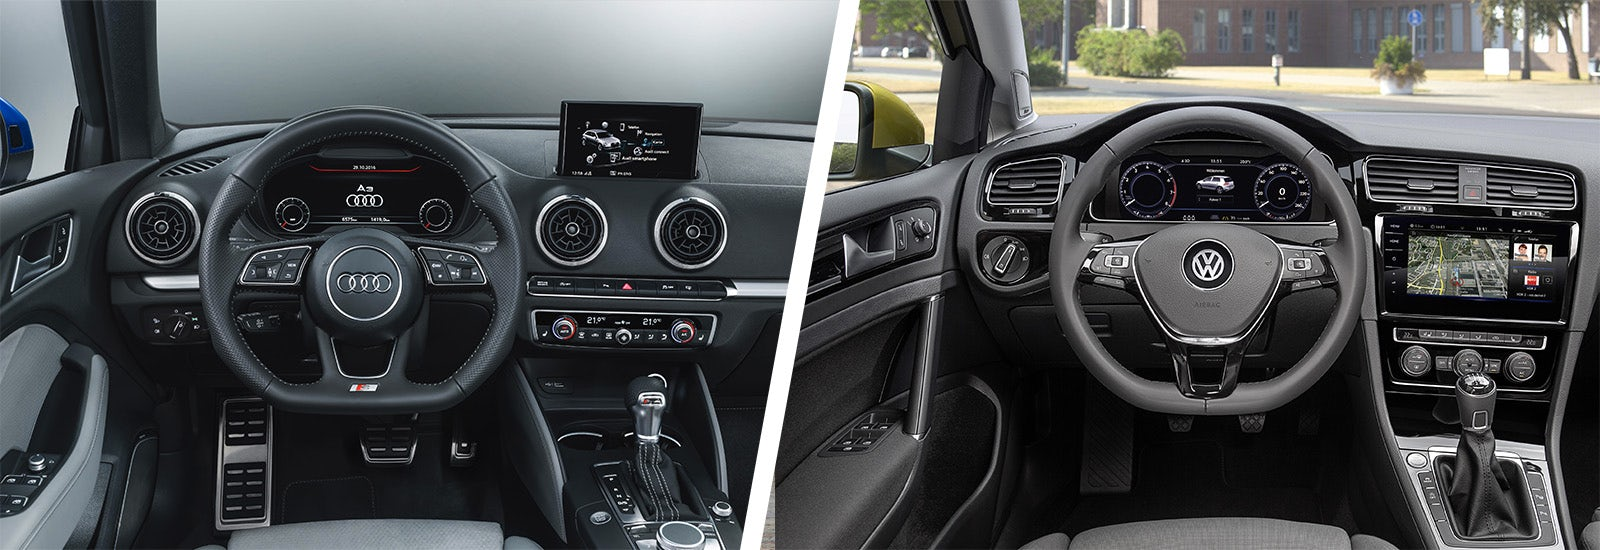 Audi A Vs VW Golf Sidebyside Comparison Carwow - Volkswagen audi